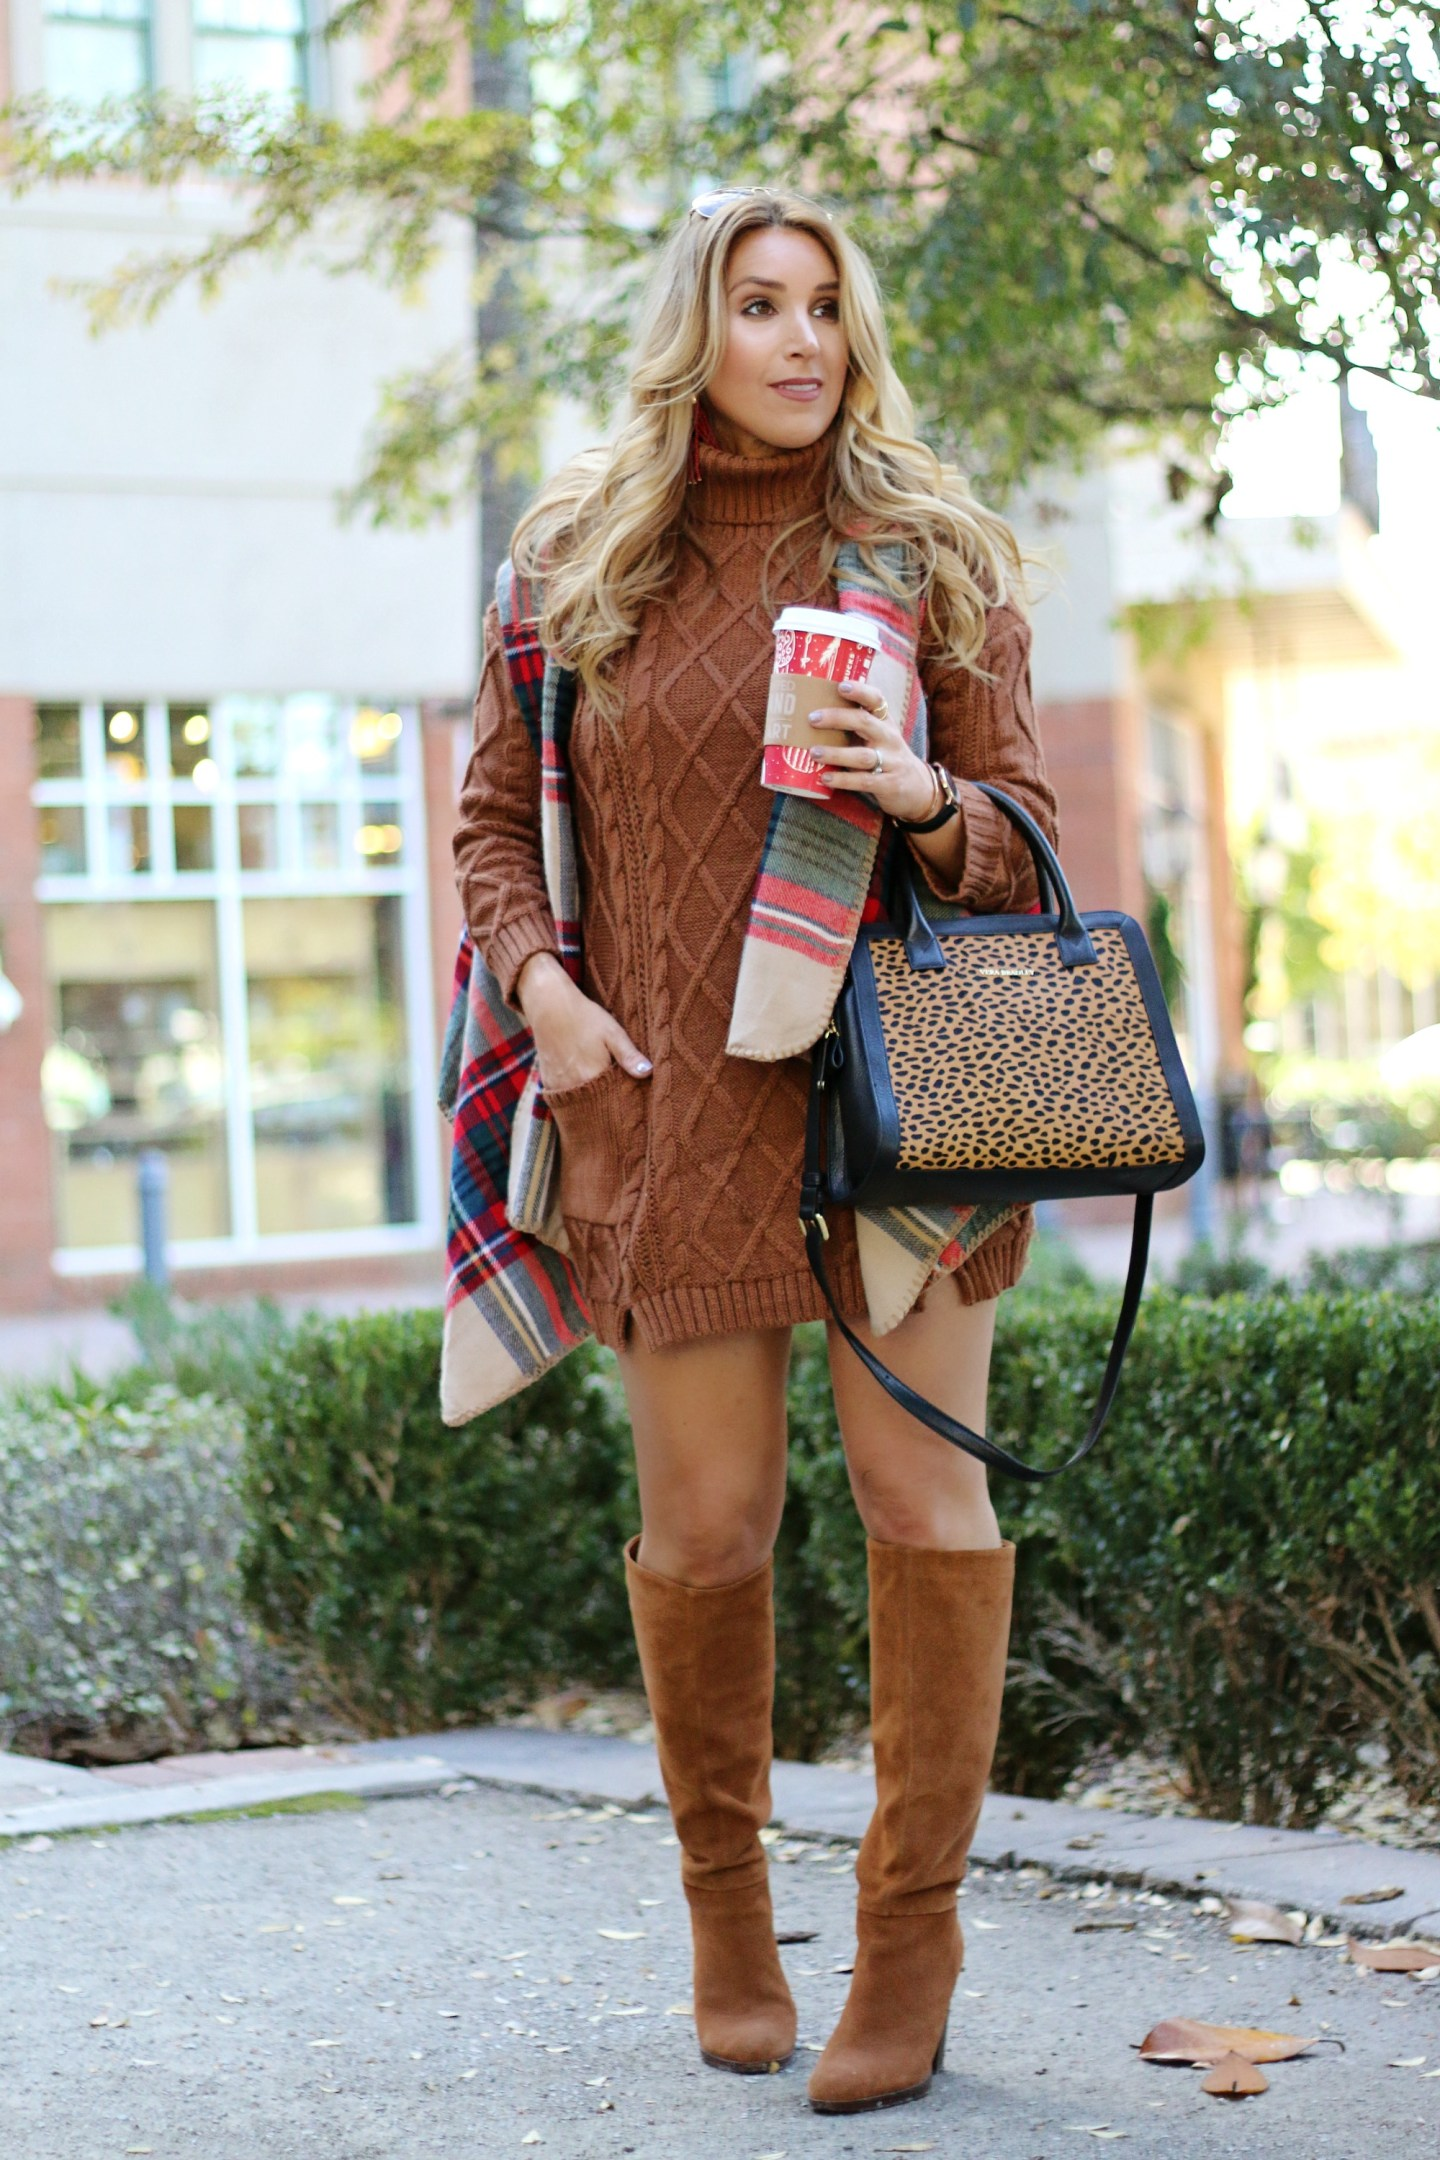 sweater dress and boots | January Hart Blog